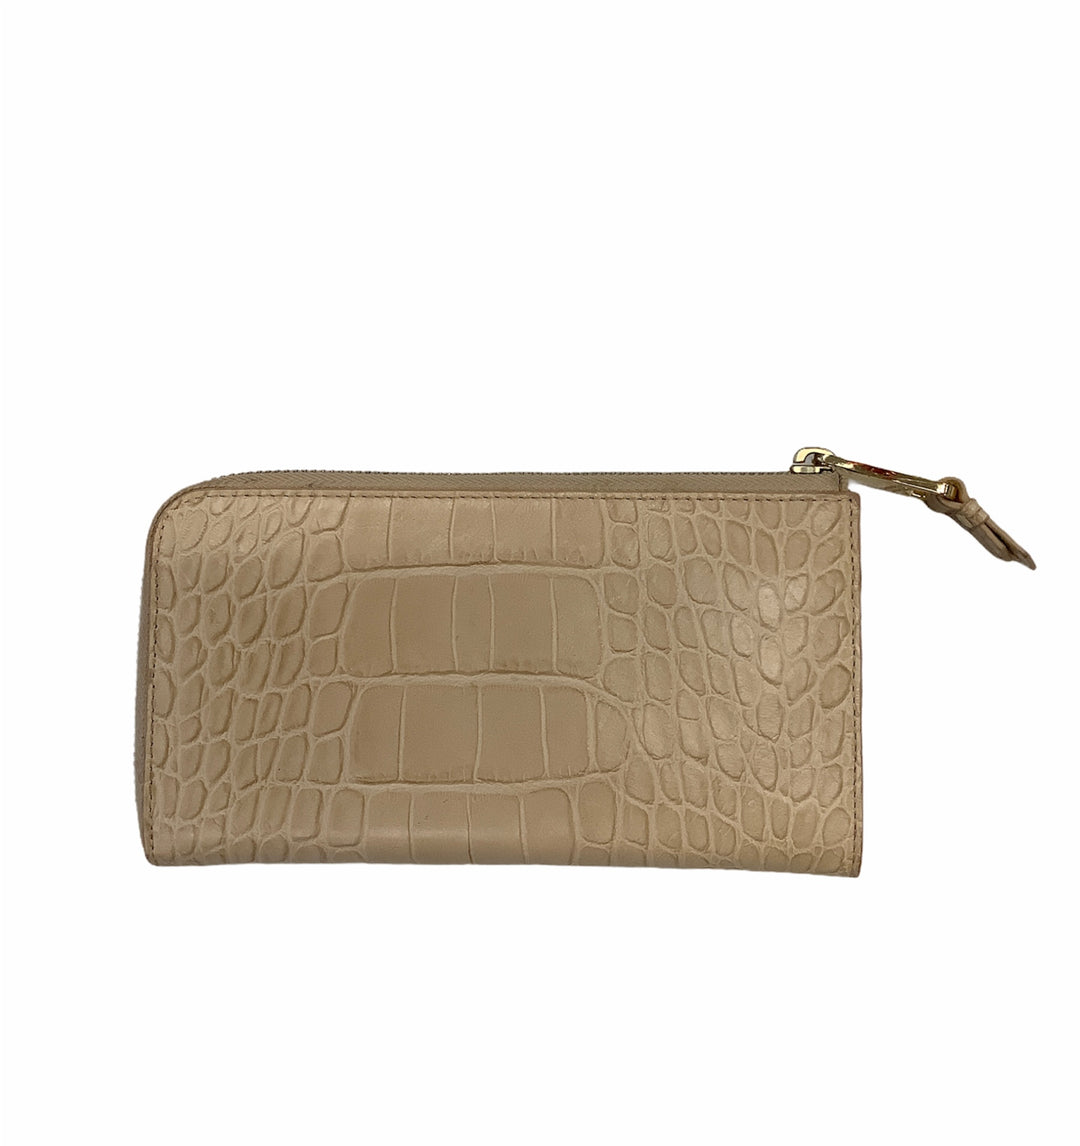 Badgley Mischka Tan Croc Wallet - <P>IN 'GOOD' CONDITION WITH MINOR FLAWS (SEE PHOTOS)</P> <P>COLOR: TAN/BEIGE</P> <P>LENGTH: 8 INCHES    HEIGHT: 4 INCHES</P>